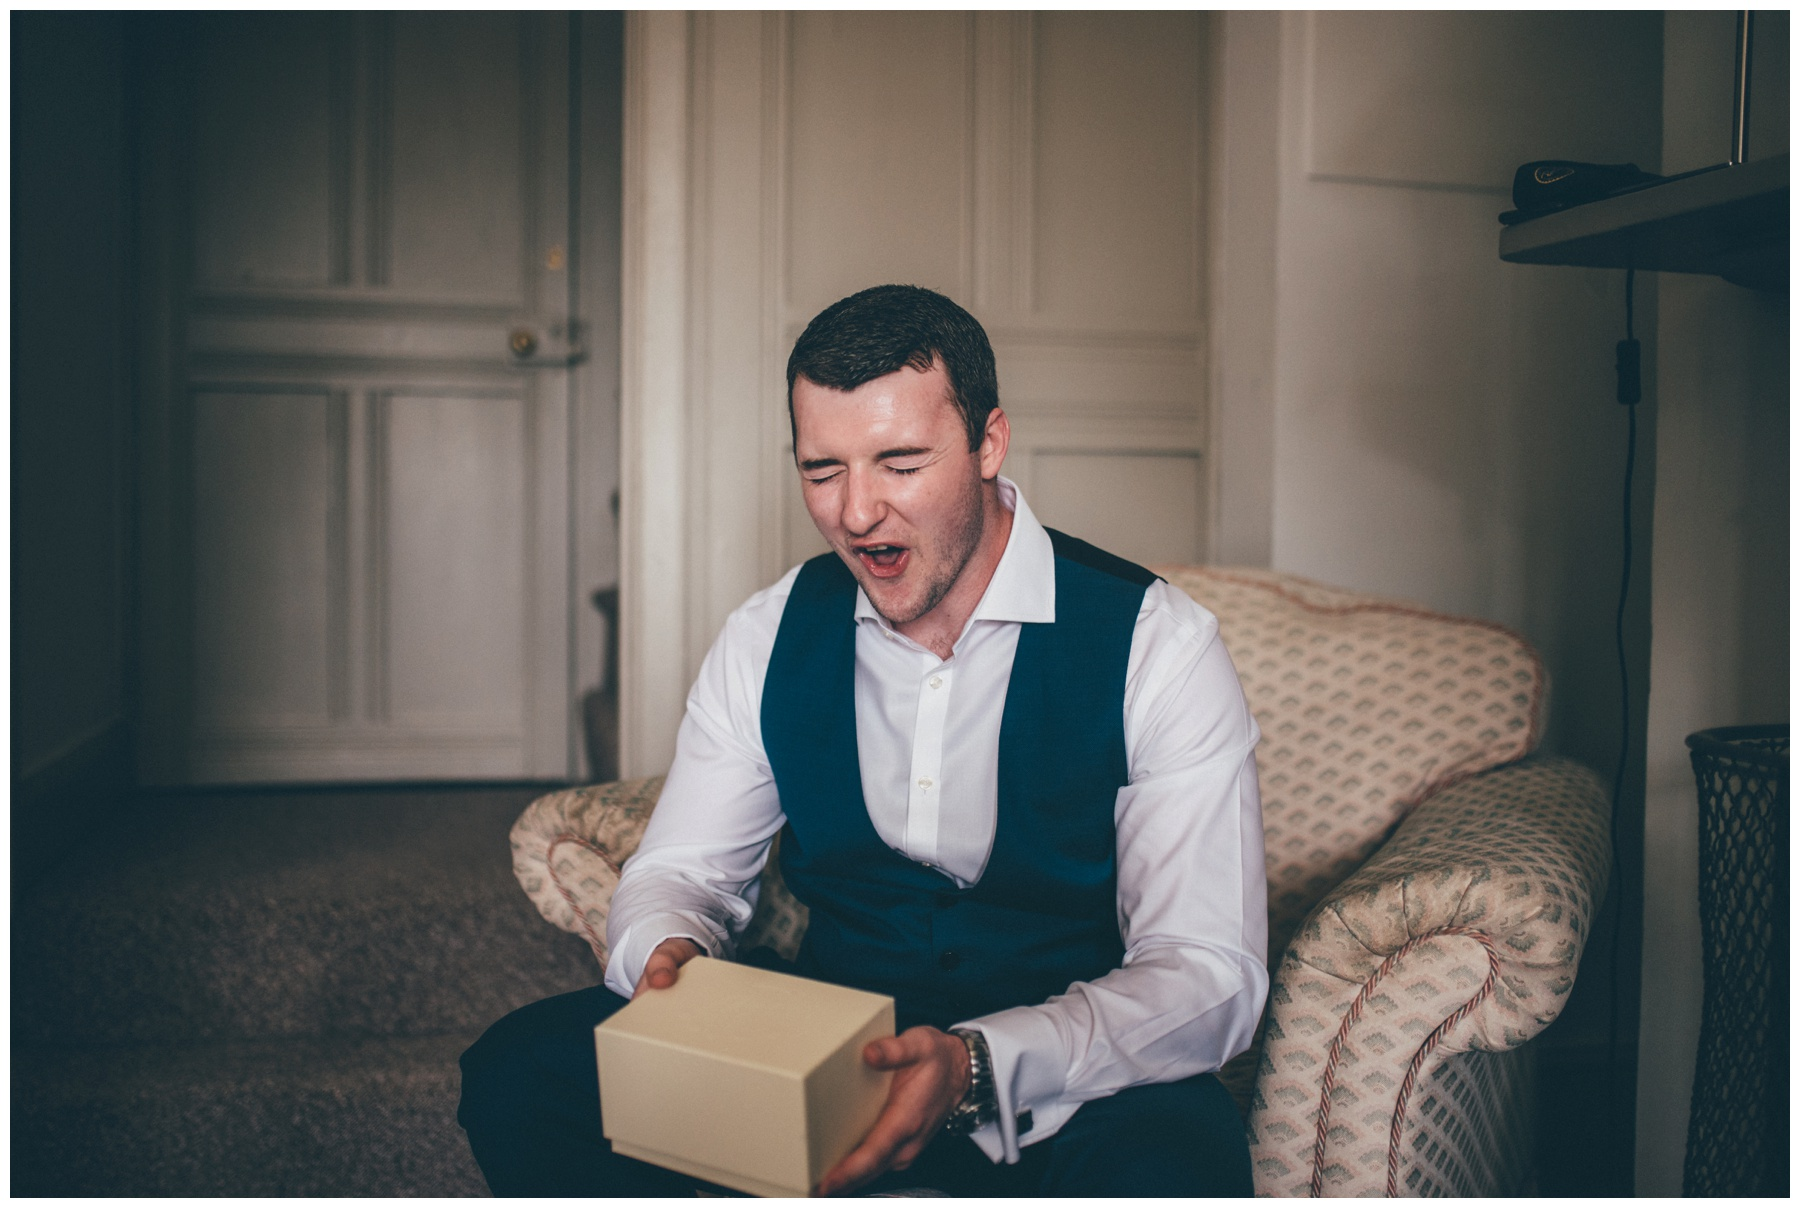 Groom sees his wedding gift from his bride-to-be, a Rolex watch, at Thornton Manor.